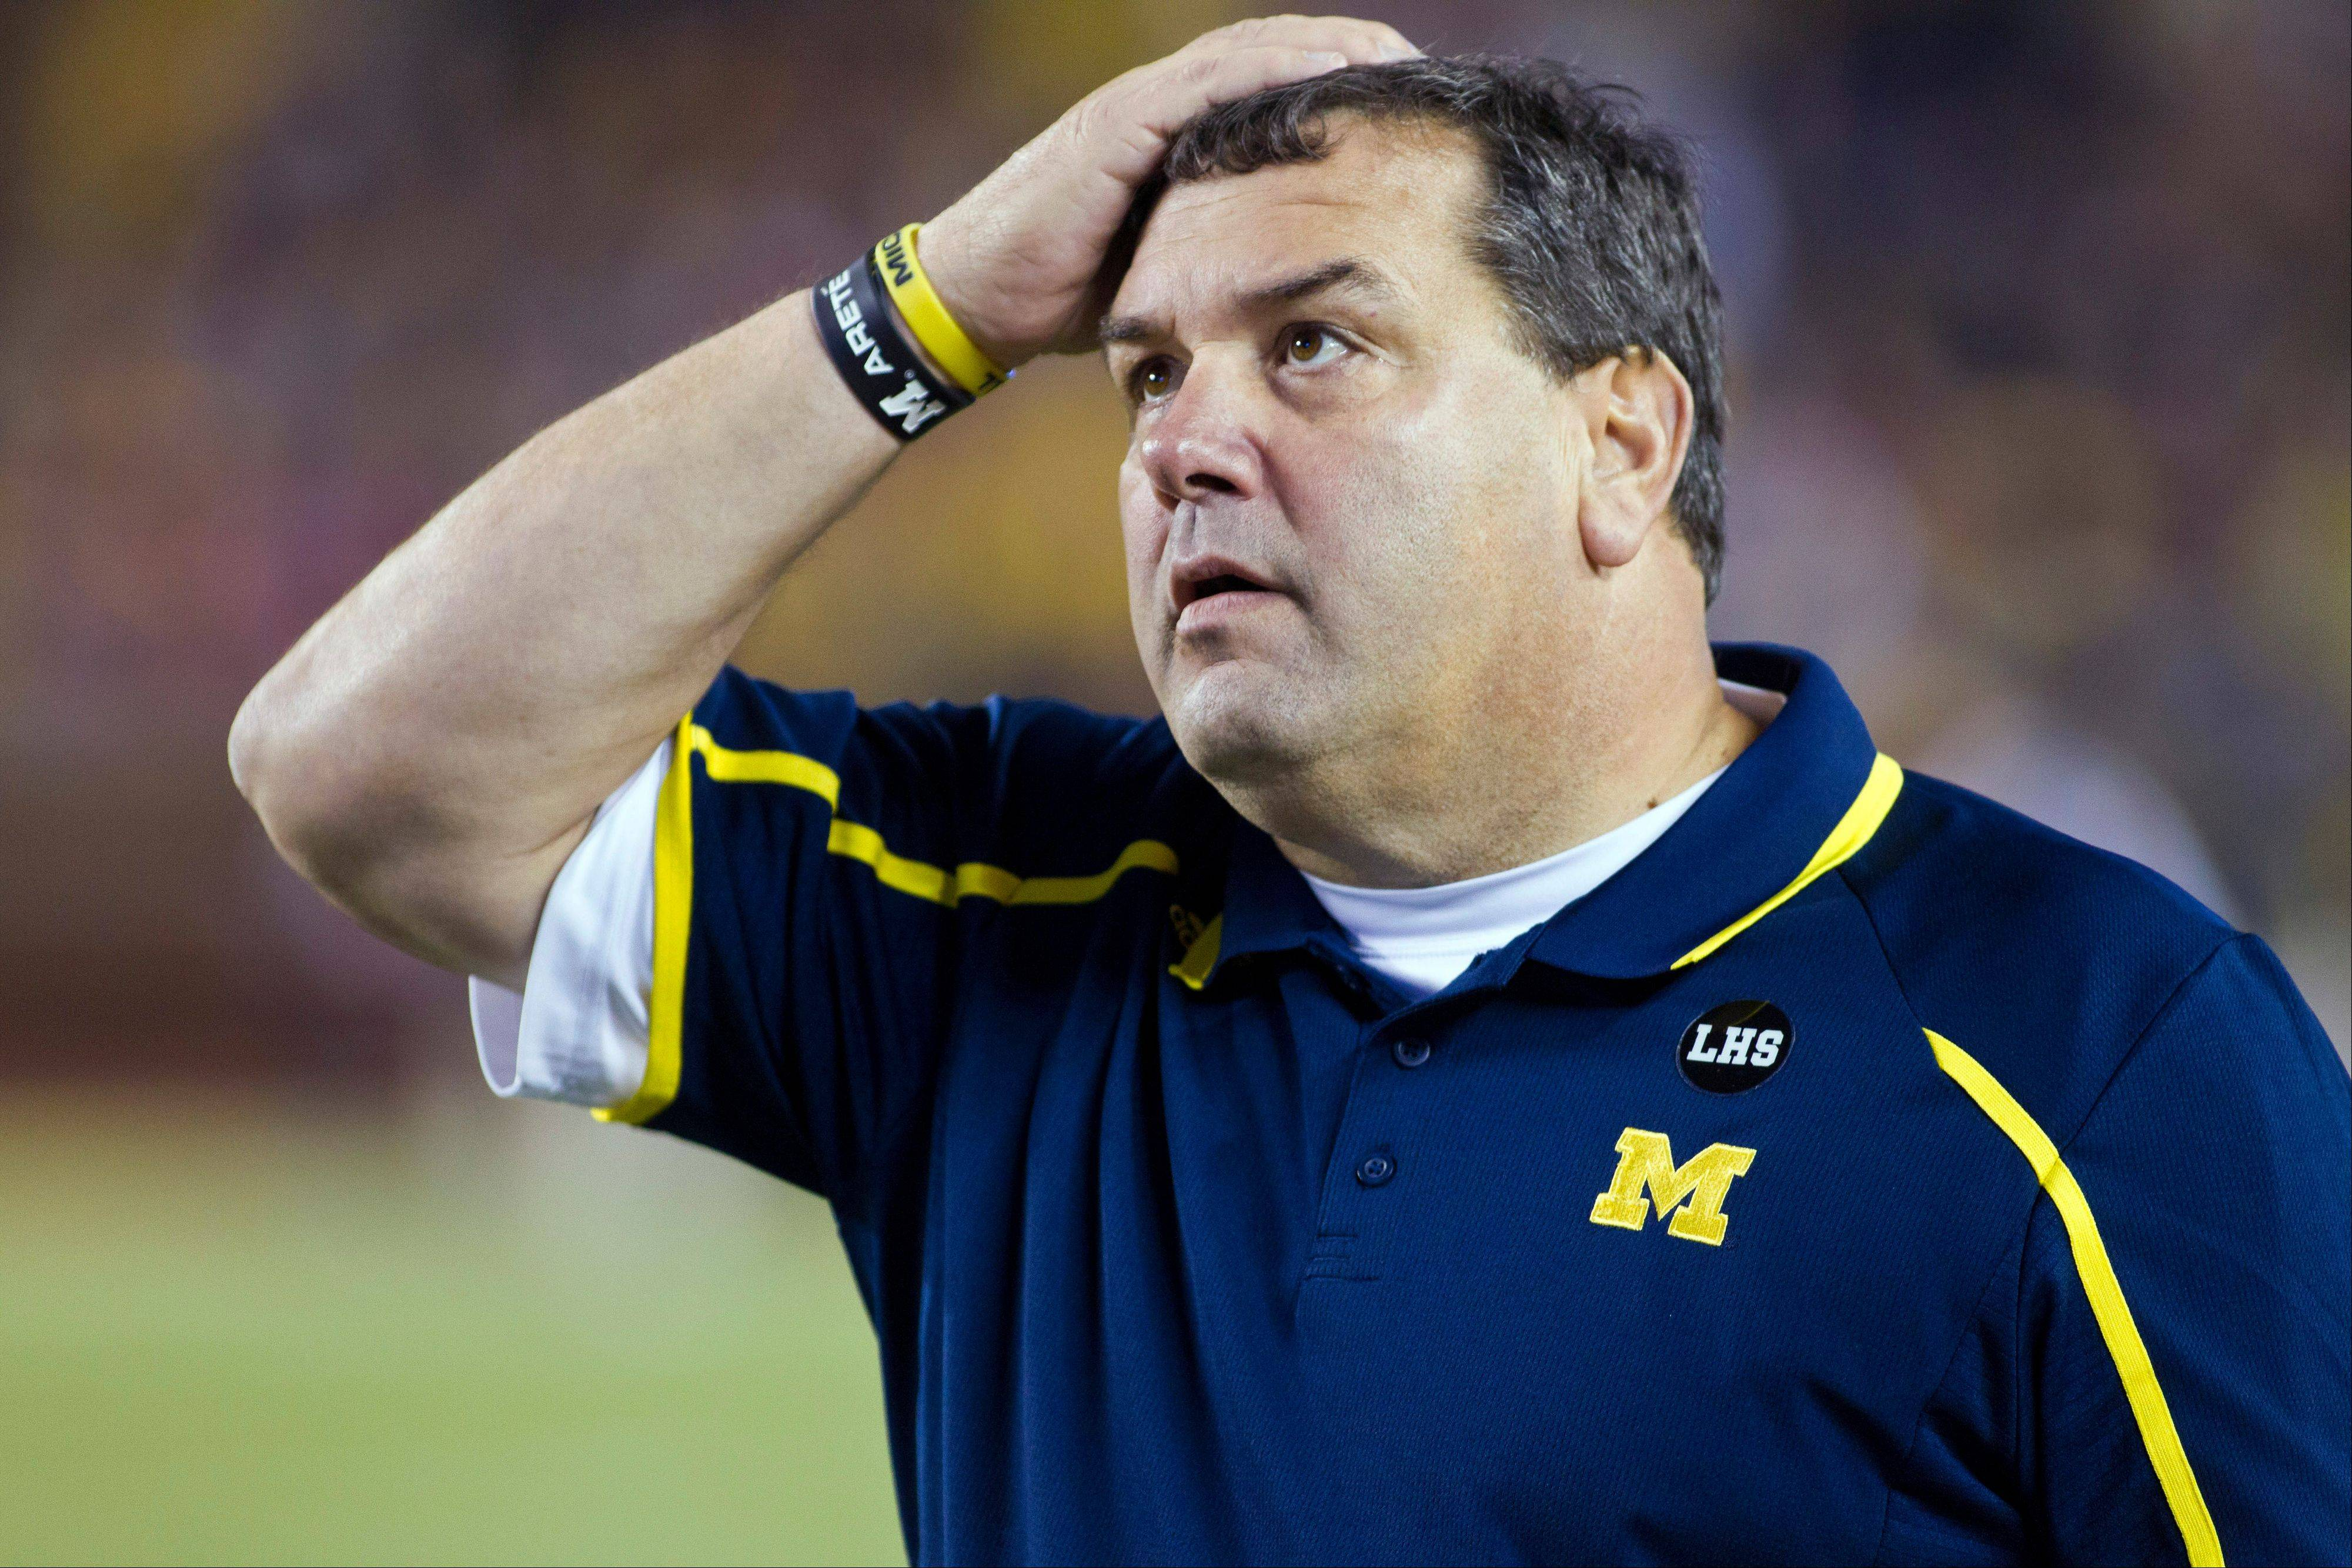 Michigan head coach Brady Hoke looks up at the scoreboard during the fourth quarter of Saturday's loss to Nebraska in Ann Arbor, Mich.